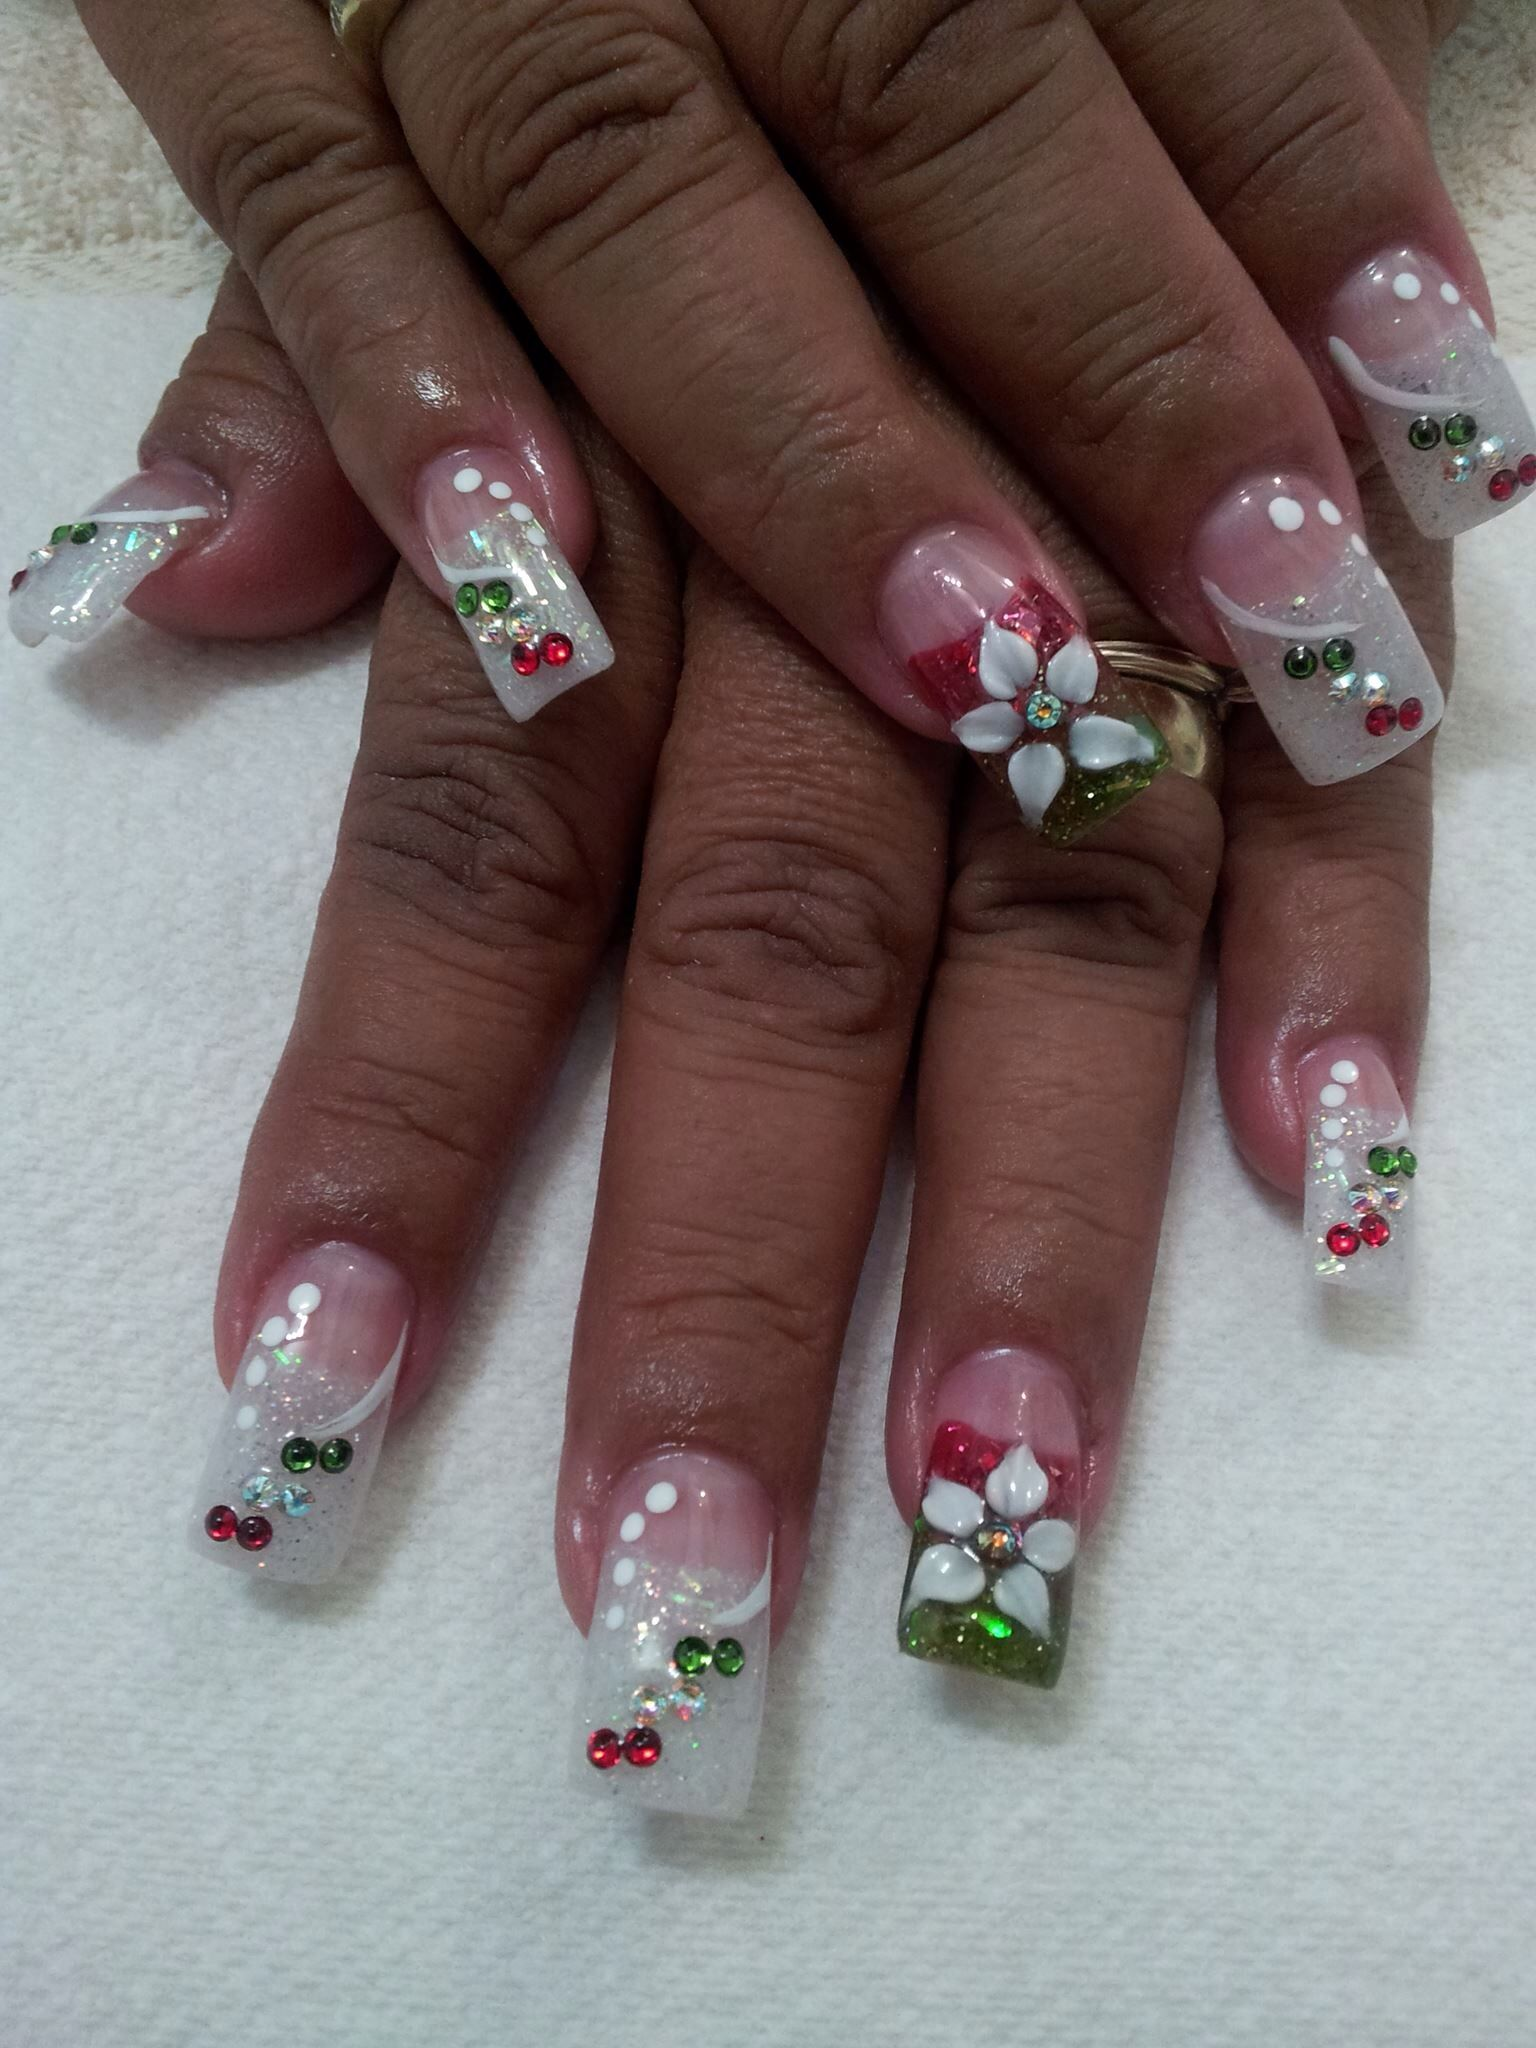 Uñas Decoradas Con Flores Secas Pin De Nelii Art En Mexicanas Nails Pinterest Uñas